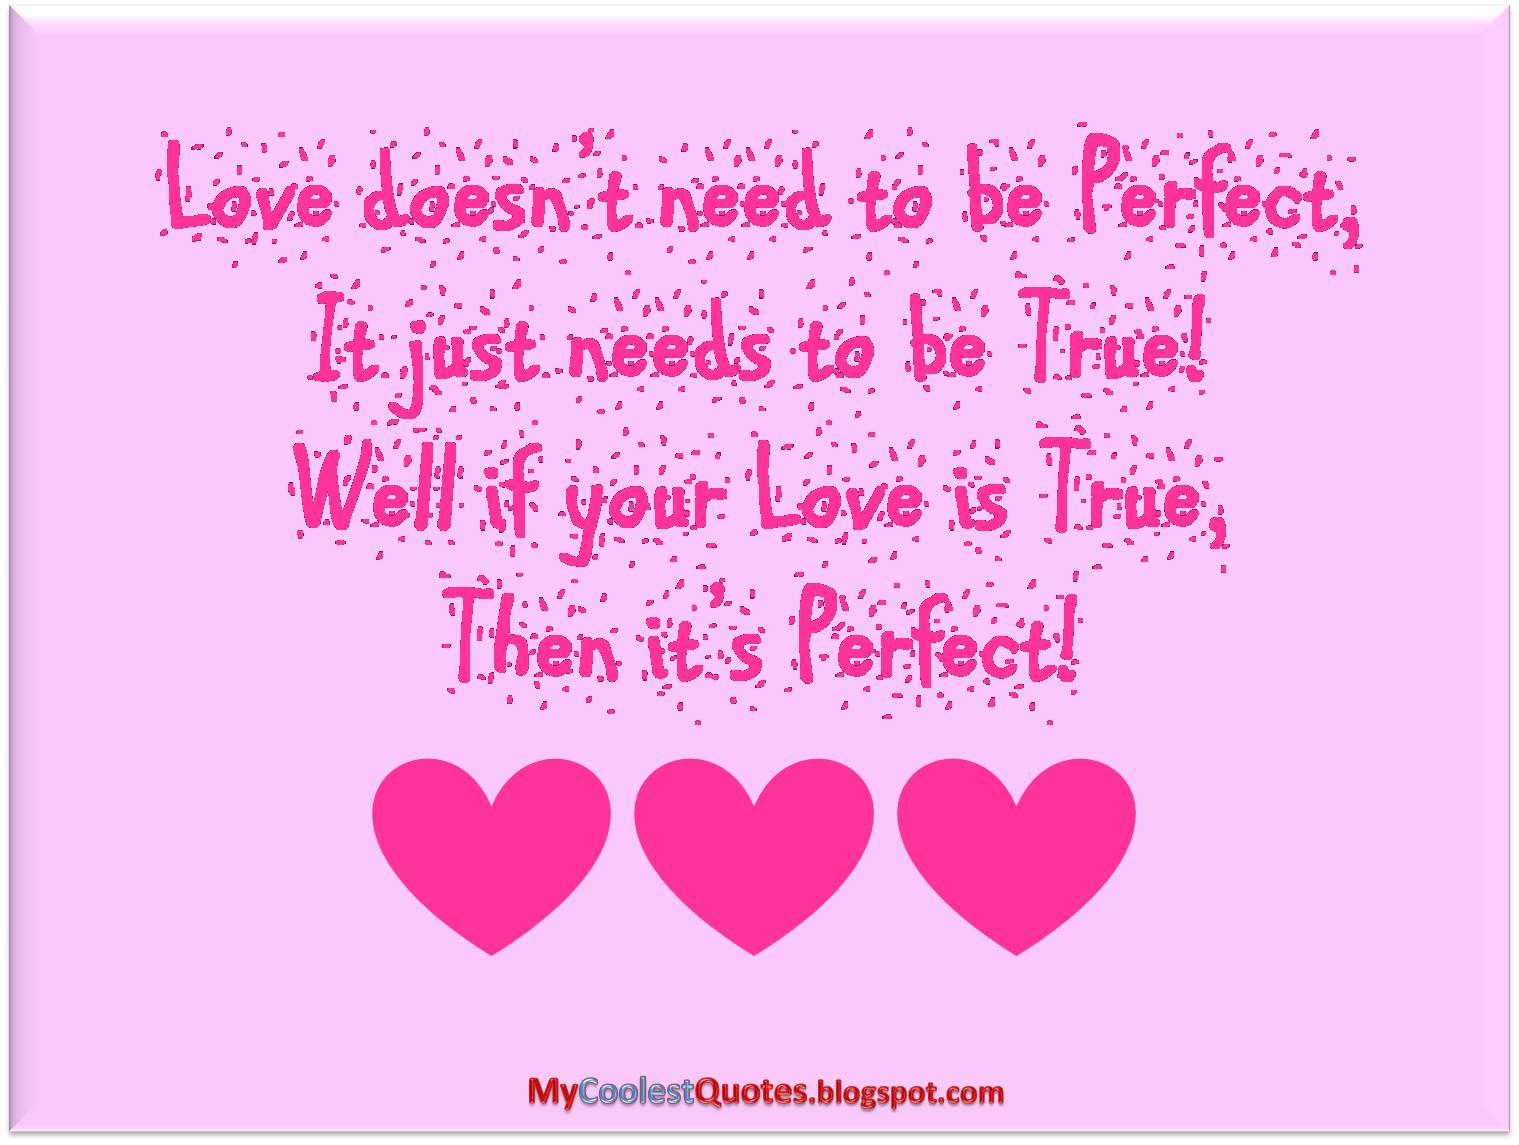 Perfect Love Quotes For Her My Coolest Quotes Wanna Know What's The Perfect Love